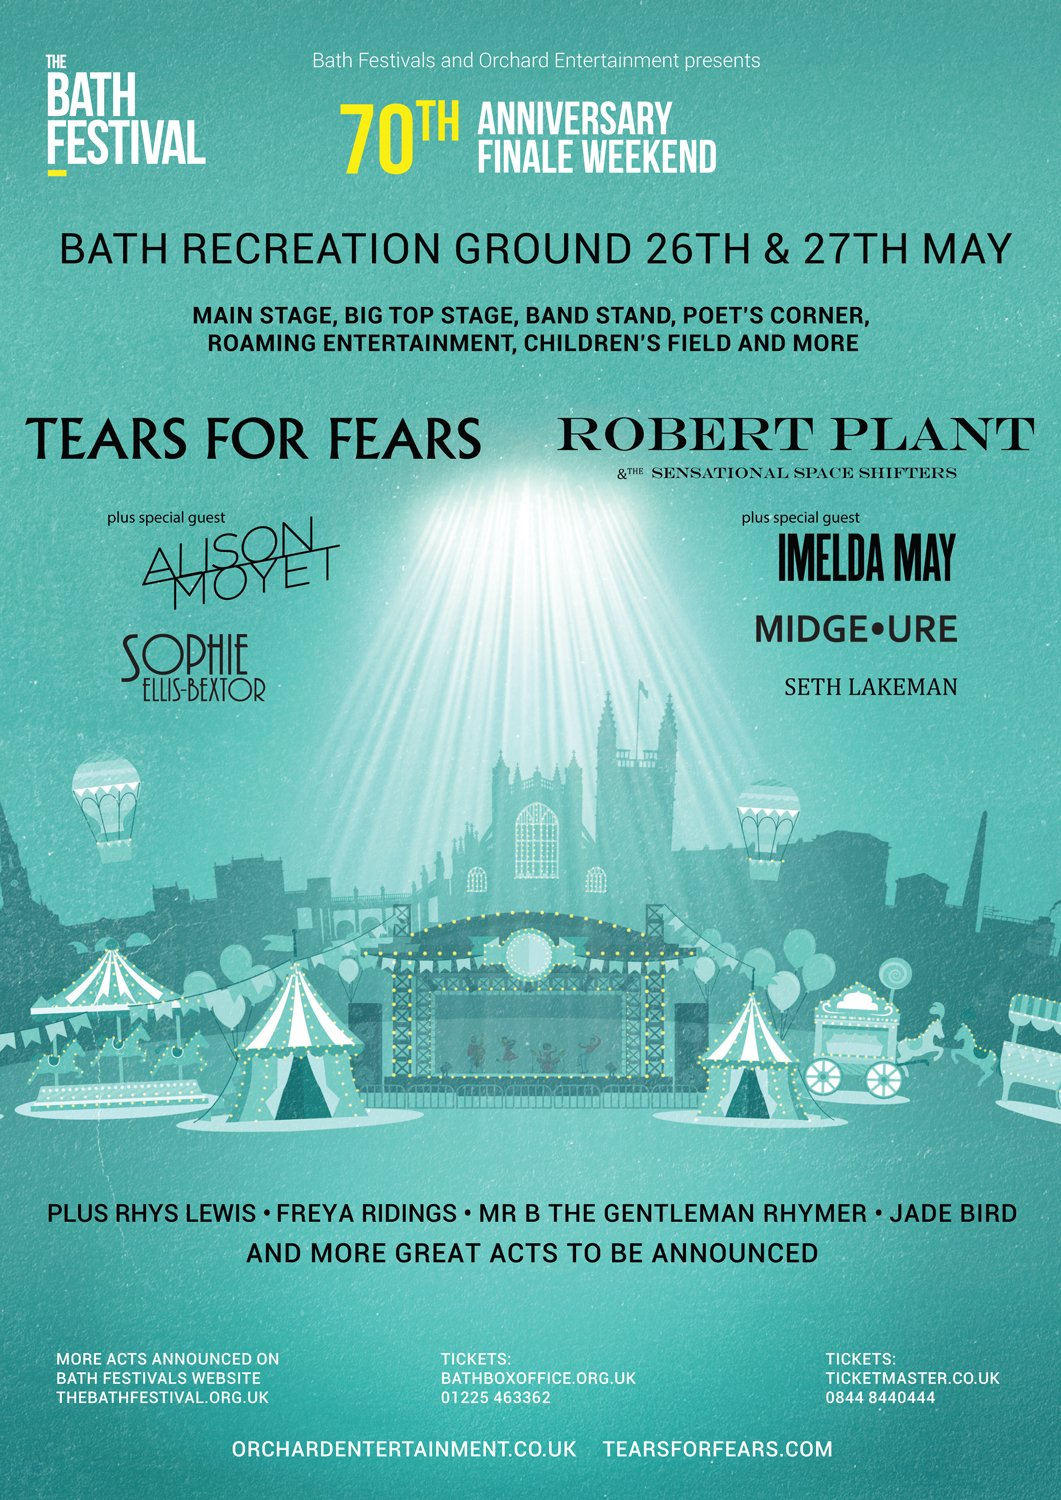 Really looking forward to playing at this year's @BathFestivals in May. https://t.co/LaeGIPjmm9 x https://t.co/joYtzgmSPY